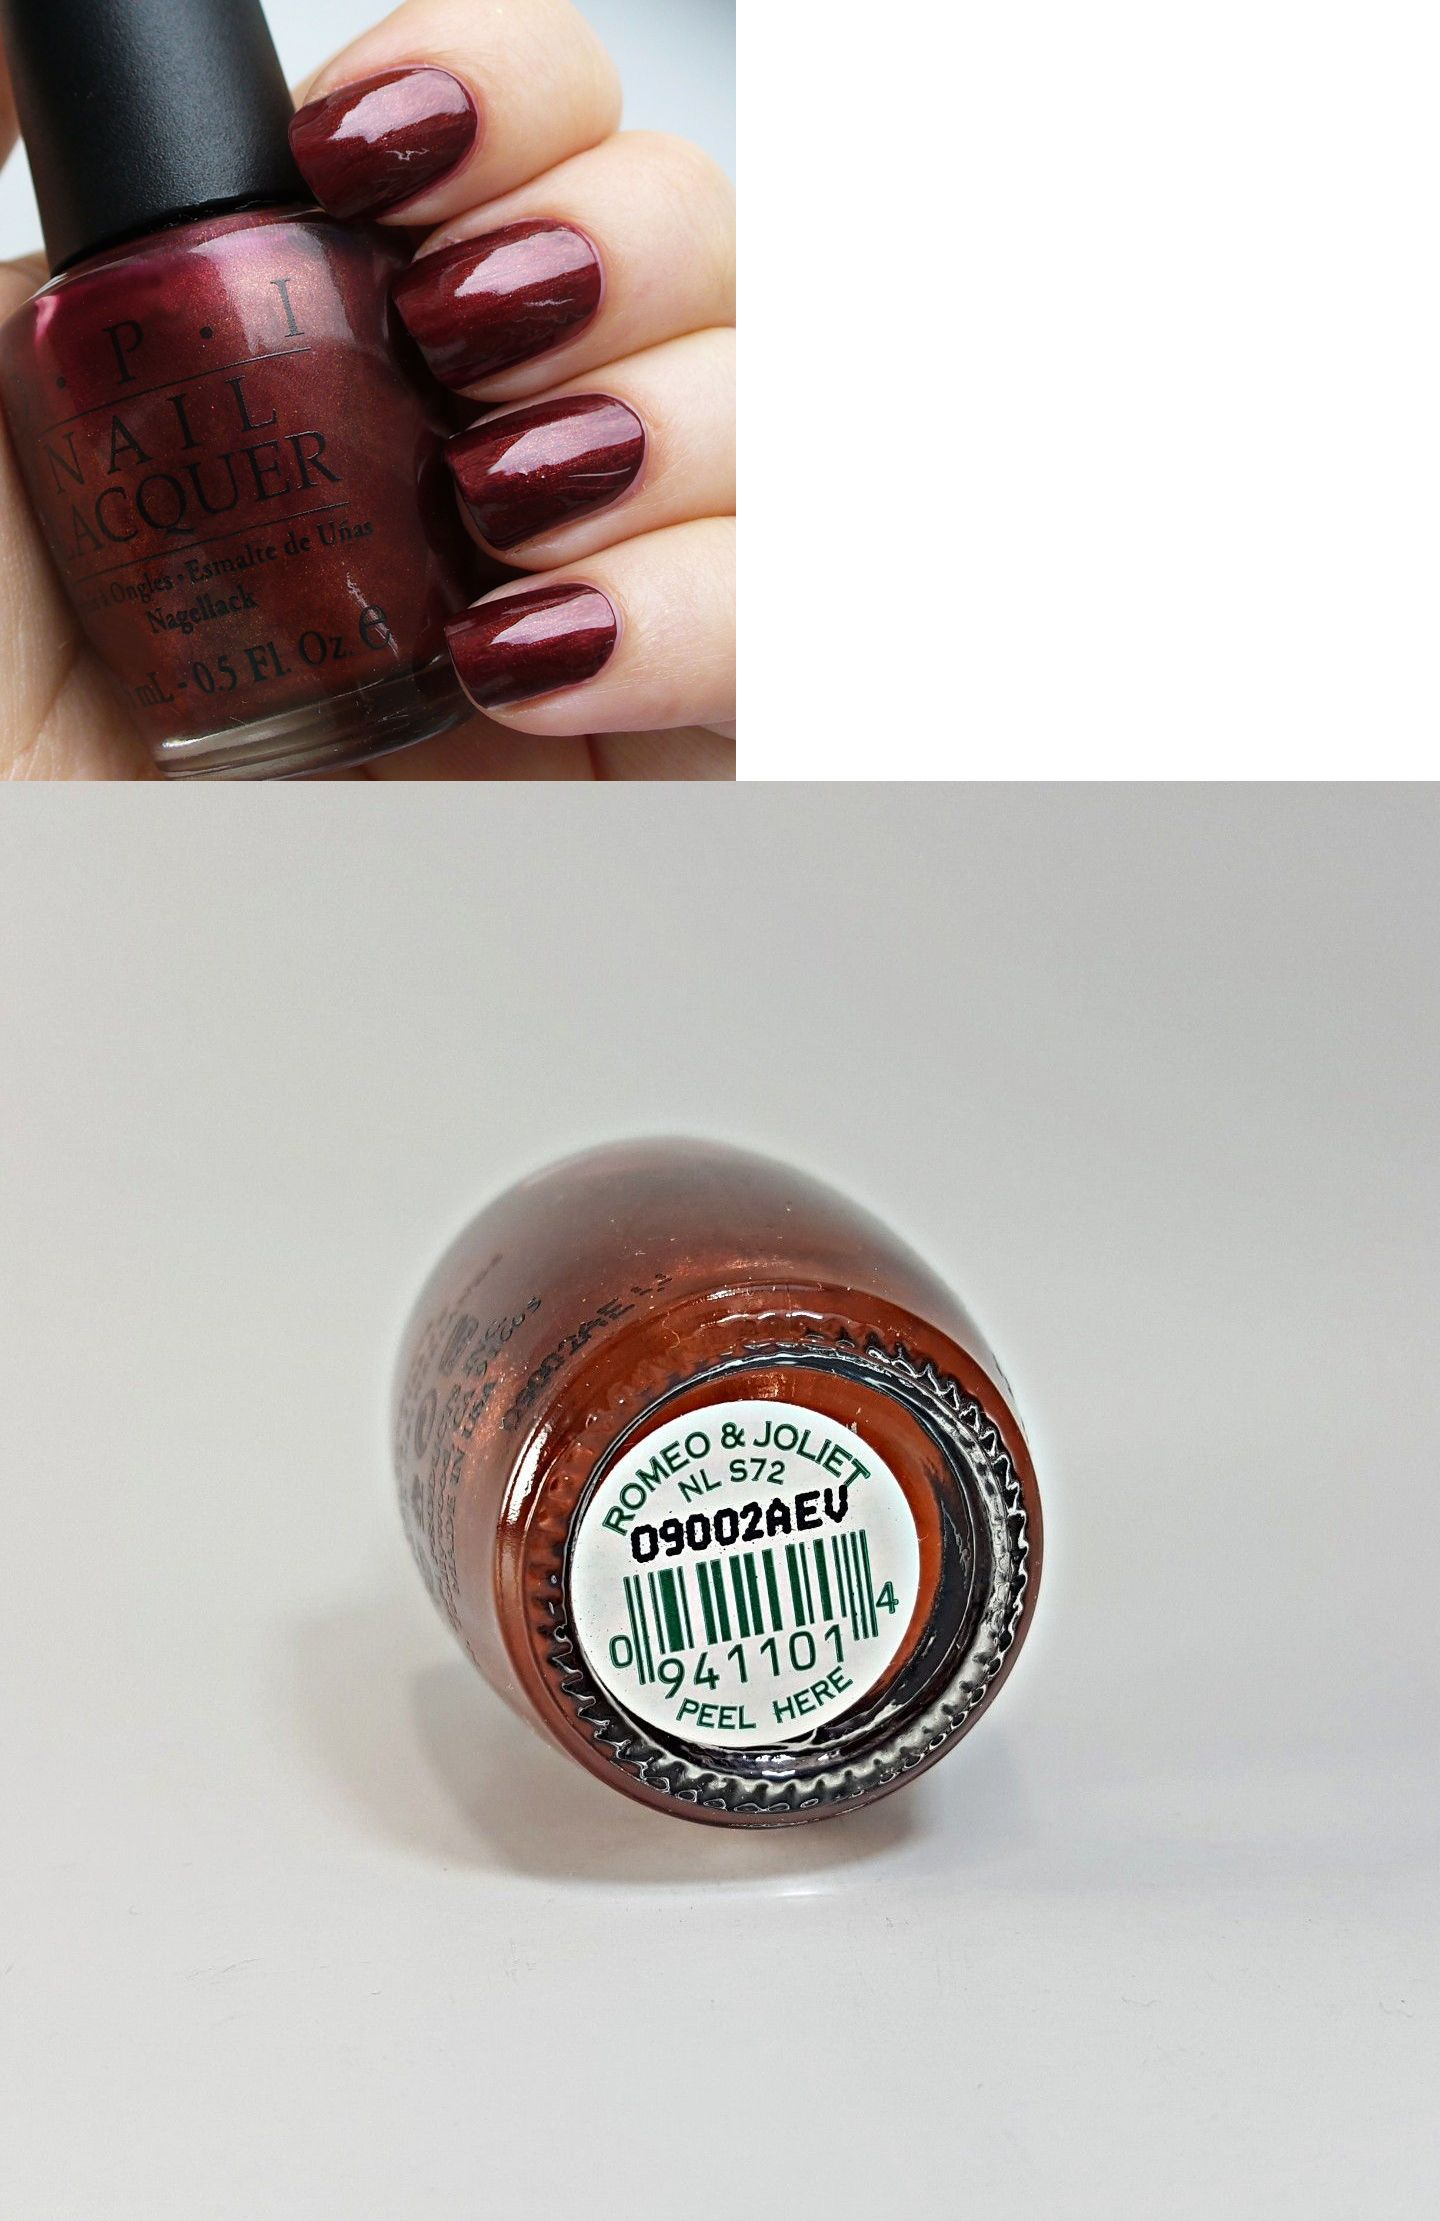 Nails Opi Nail Lacquer Romeo And Jolies Nl S ue BUY IT NOW ONLY